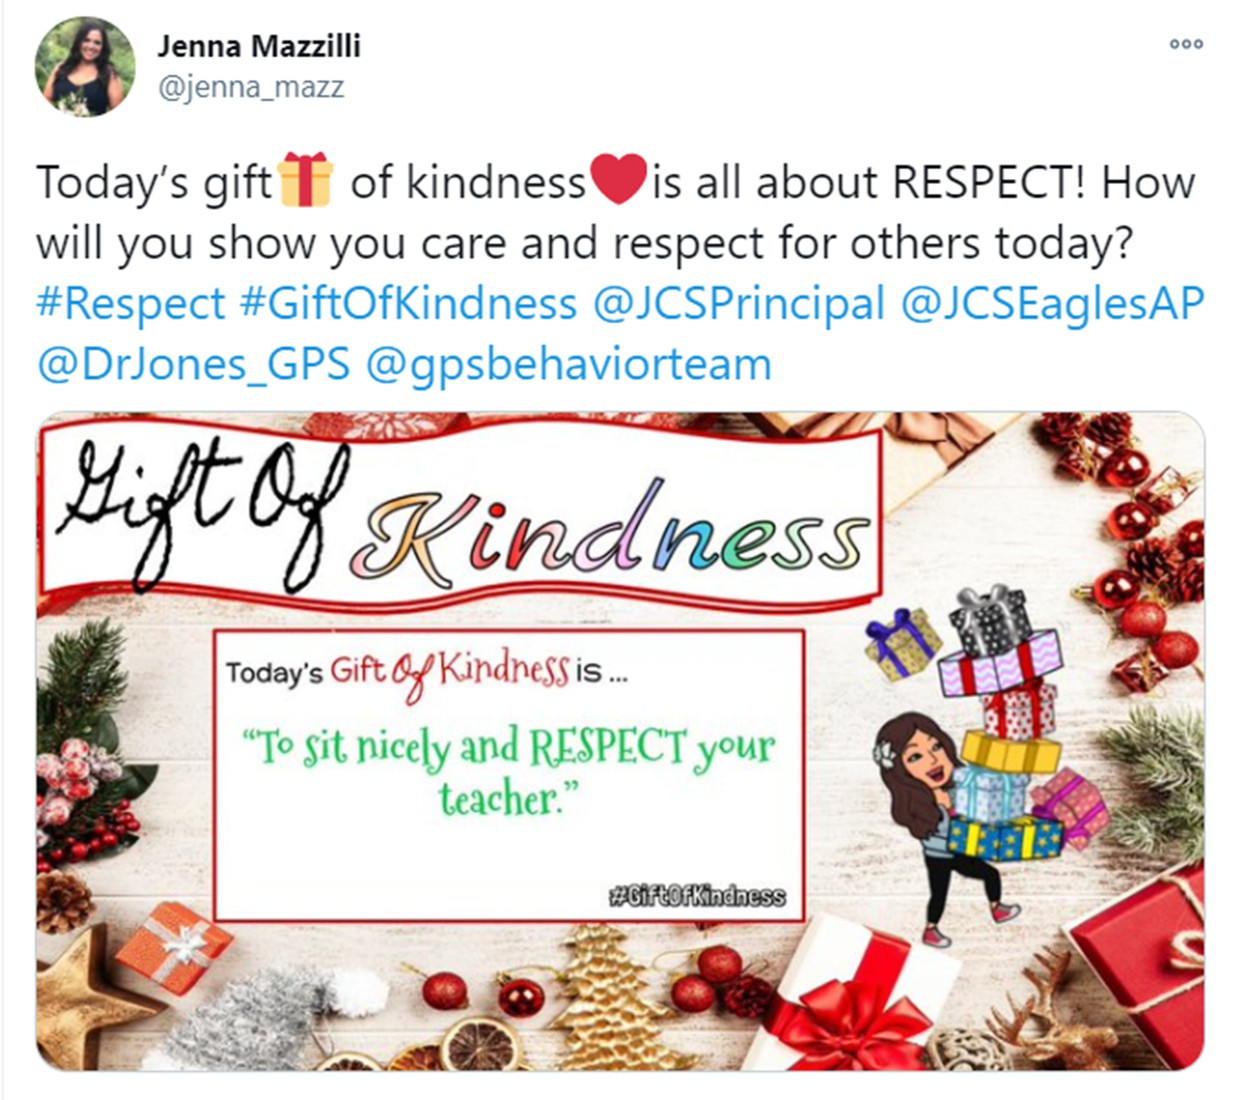 The was a daily gift of kindness at JC.